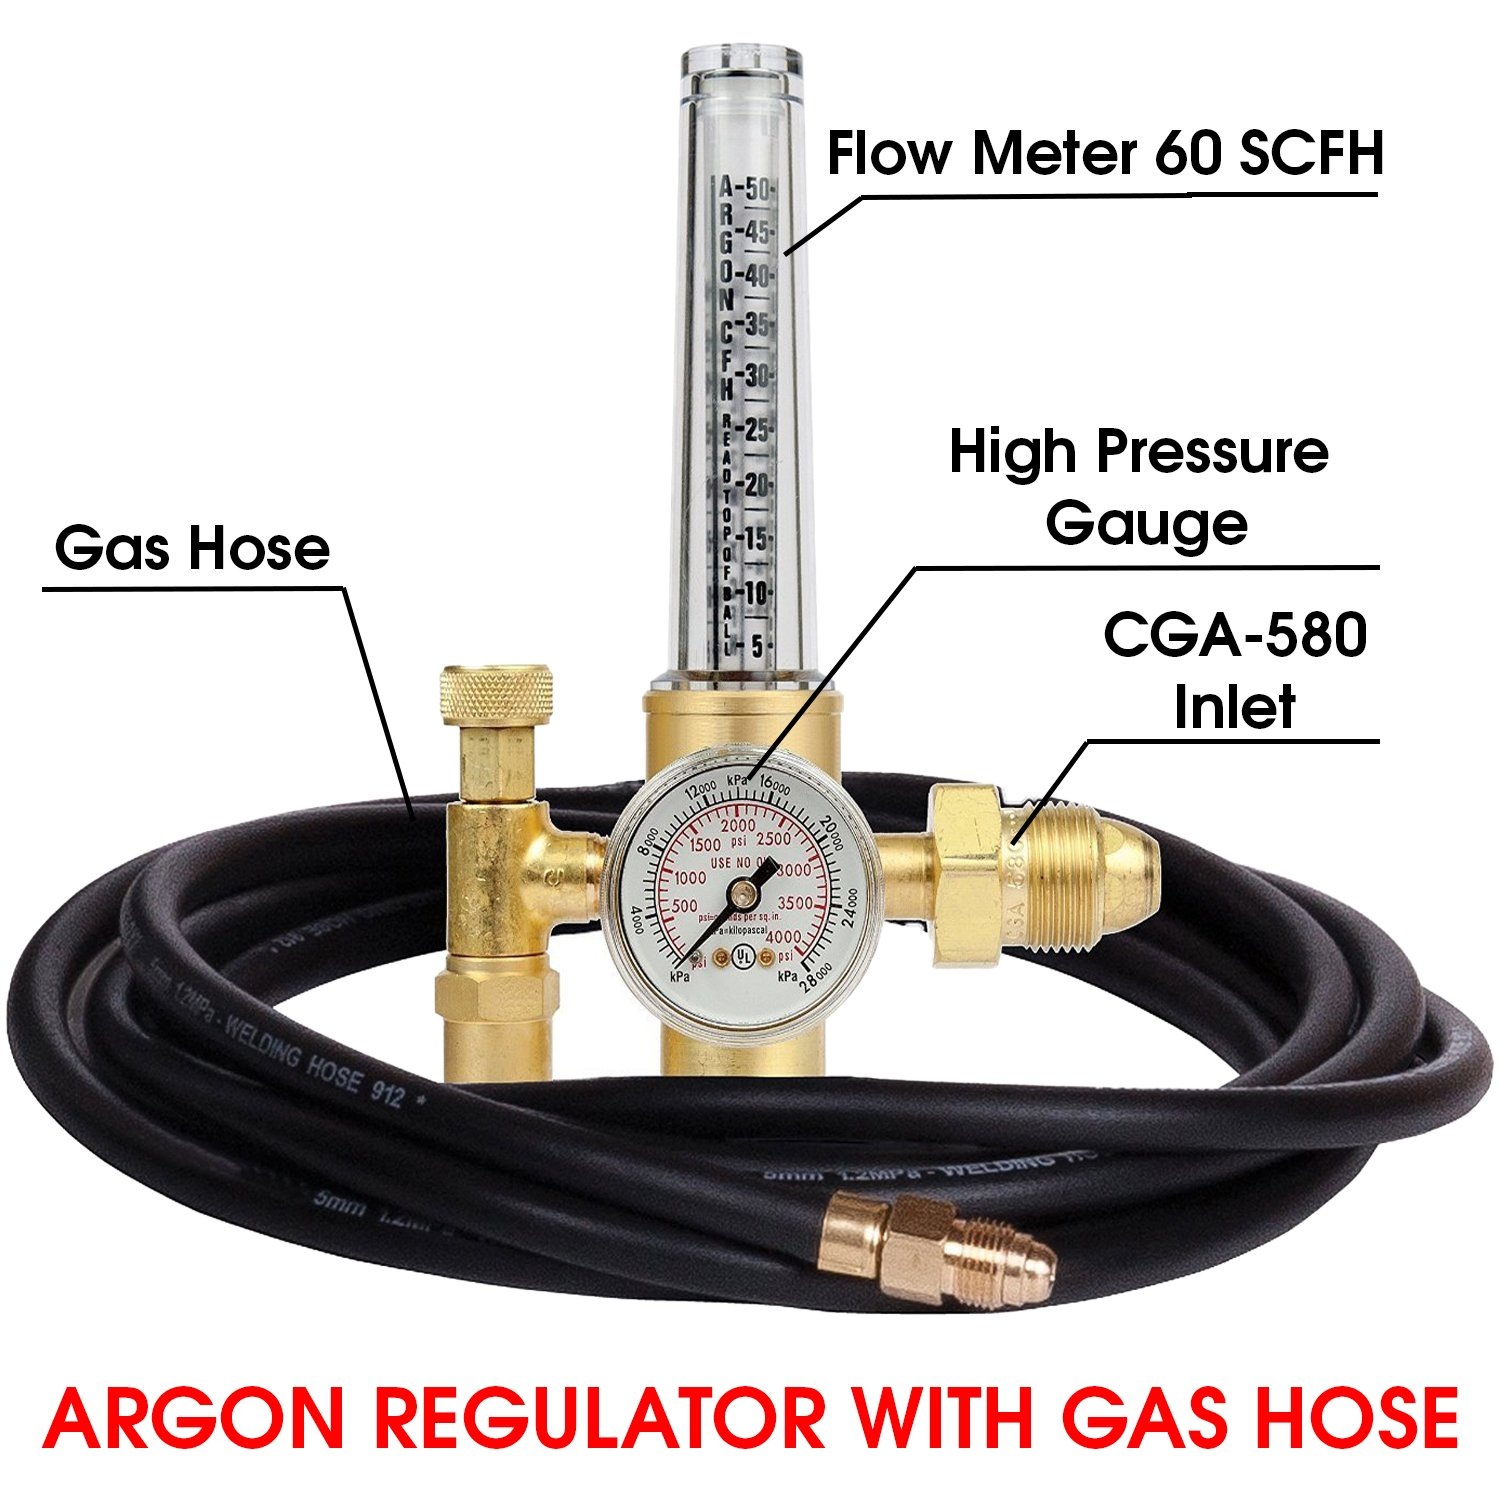 Argon Regulator TIG Welder MIG Welding CO2 Flowmeter 10 to 60 CFH - 0 to 4000 psi pressure gauge CGA580 inlet Connection Gas Welder Welding Regulator More Accurate Gas Metering For Gas Delivery System by BUBBLEBAGDUDE